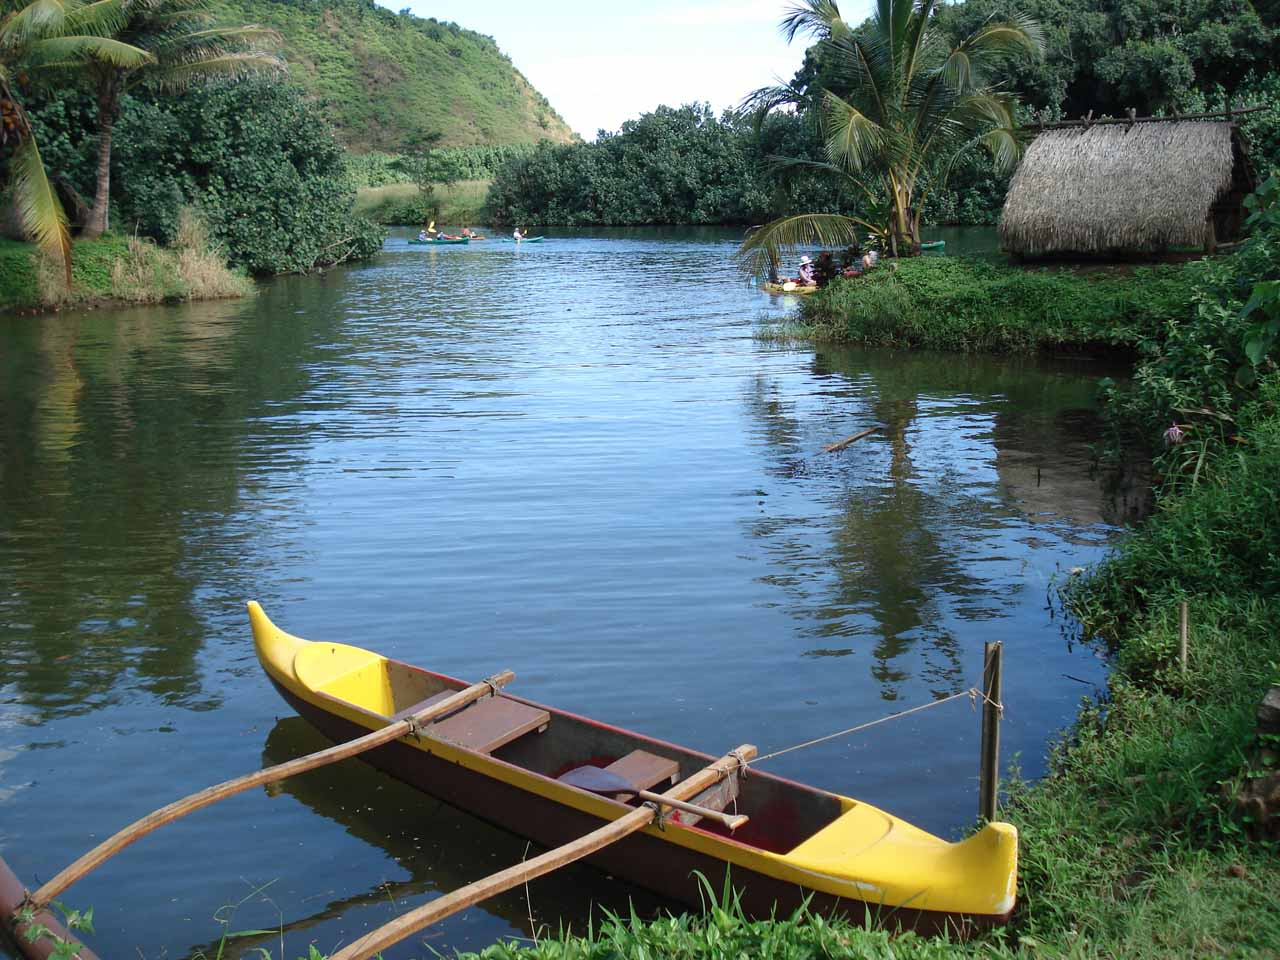 Canoe at Kamokila Hawaiian Village